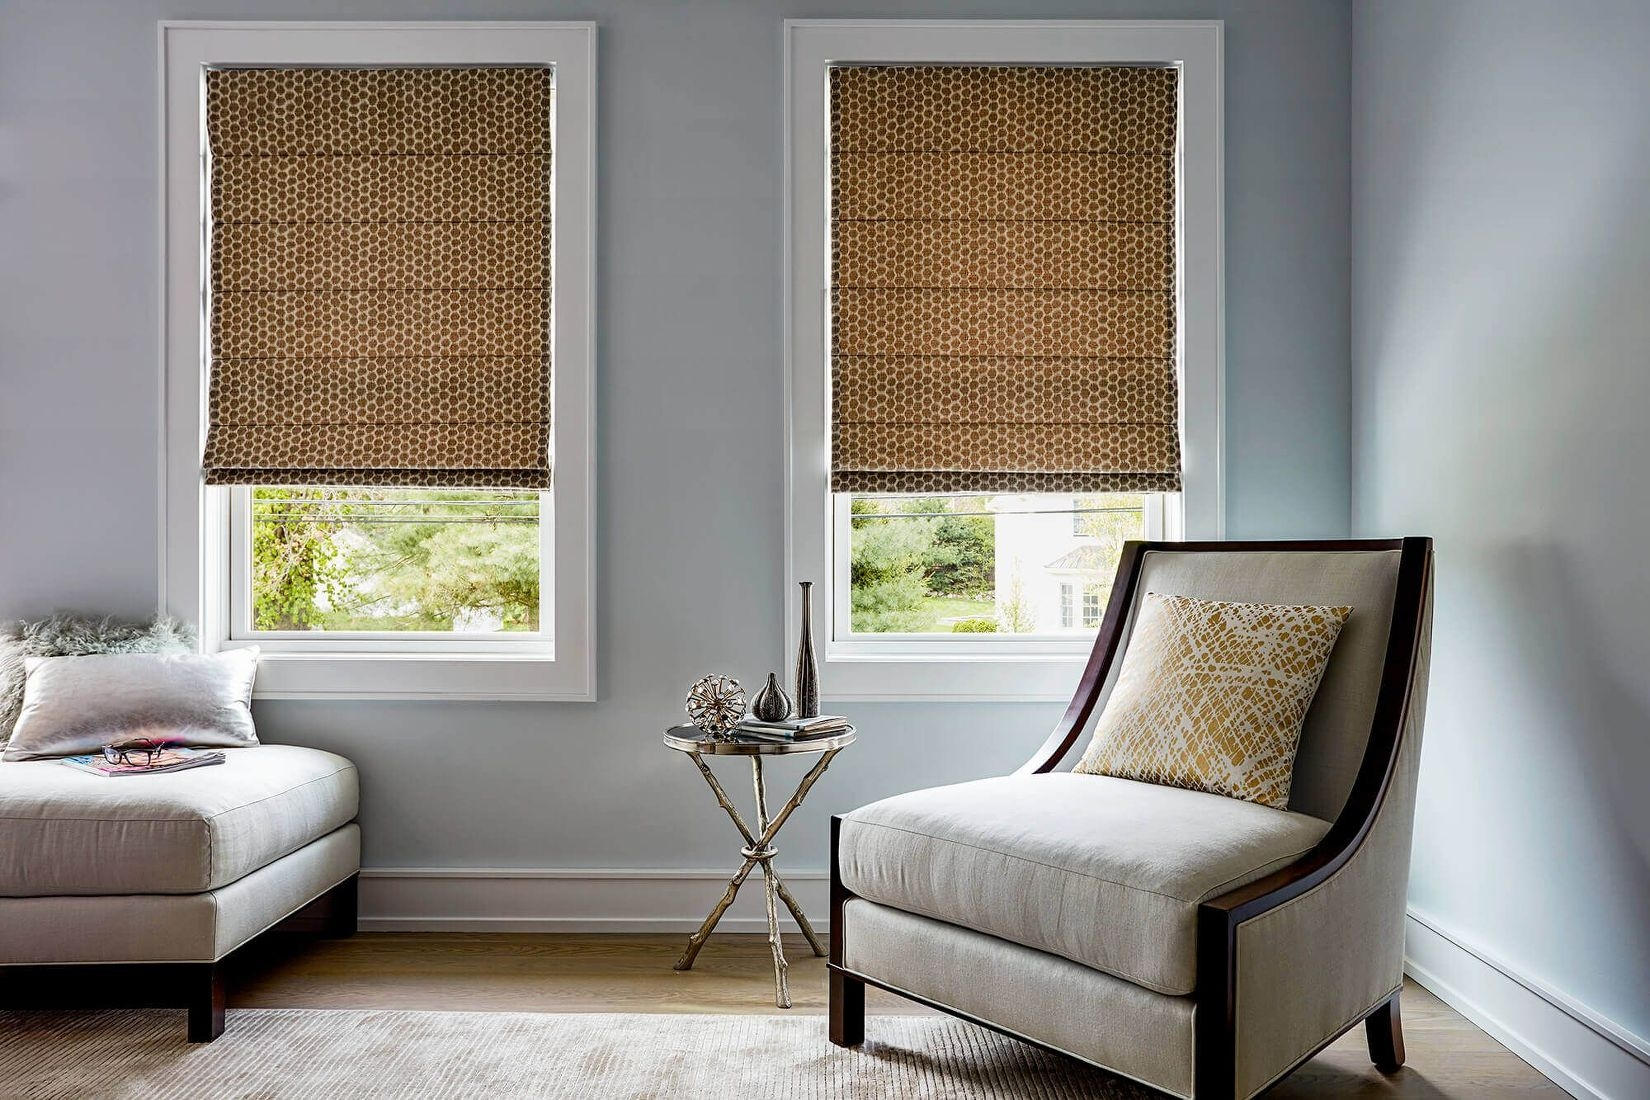 Roman Shades Custom Made Fabric Shades Blinds To Go Throughout Roman Fabric Blinds (Image 10 of 15)